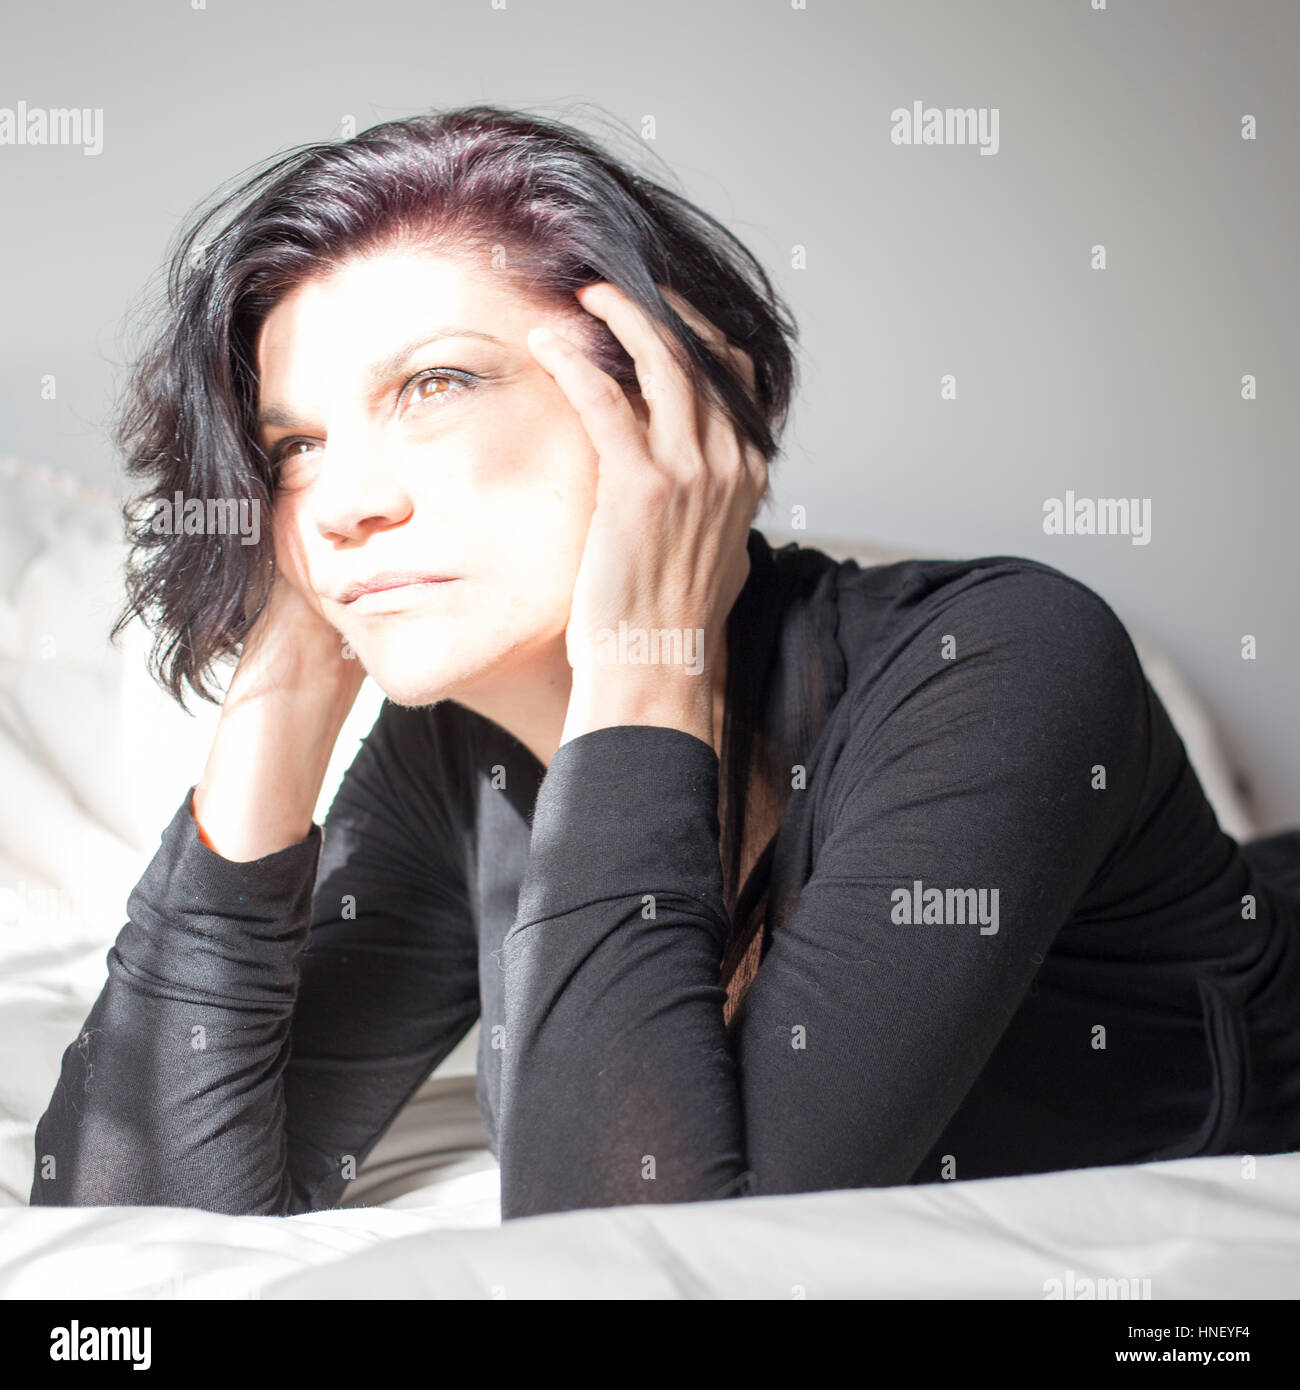 Unfocused shot of a woman in thought. - Stock Image